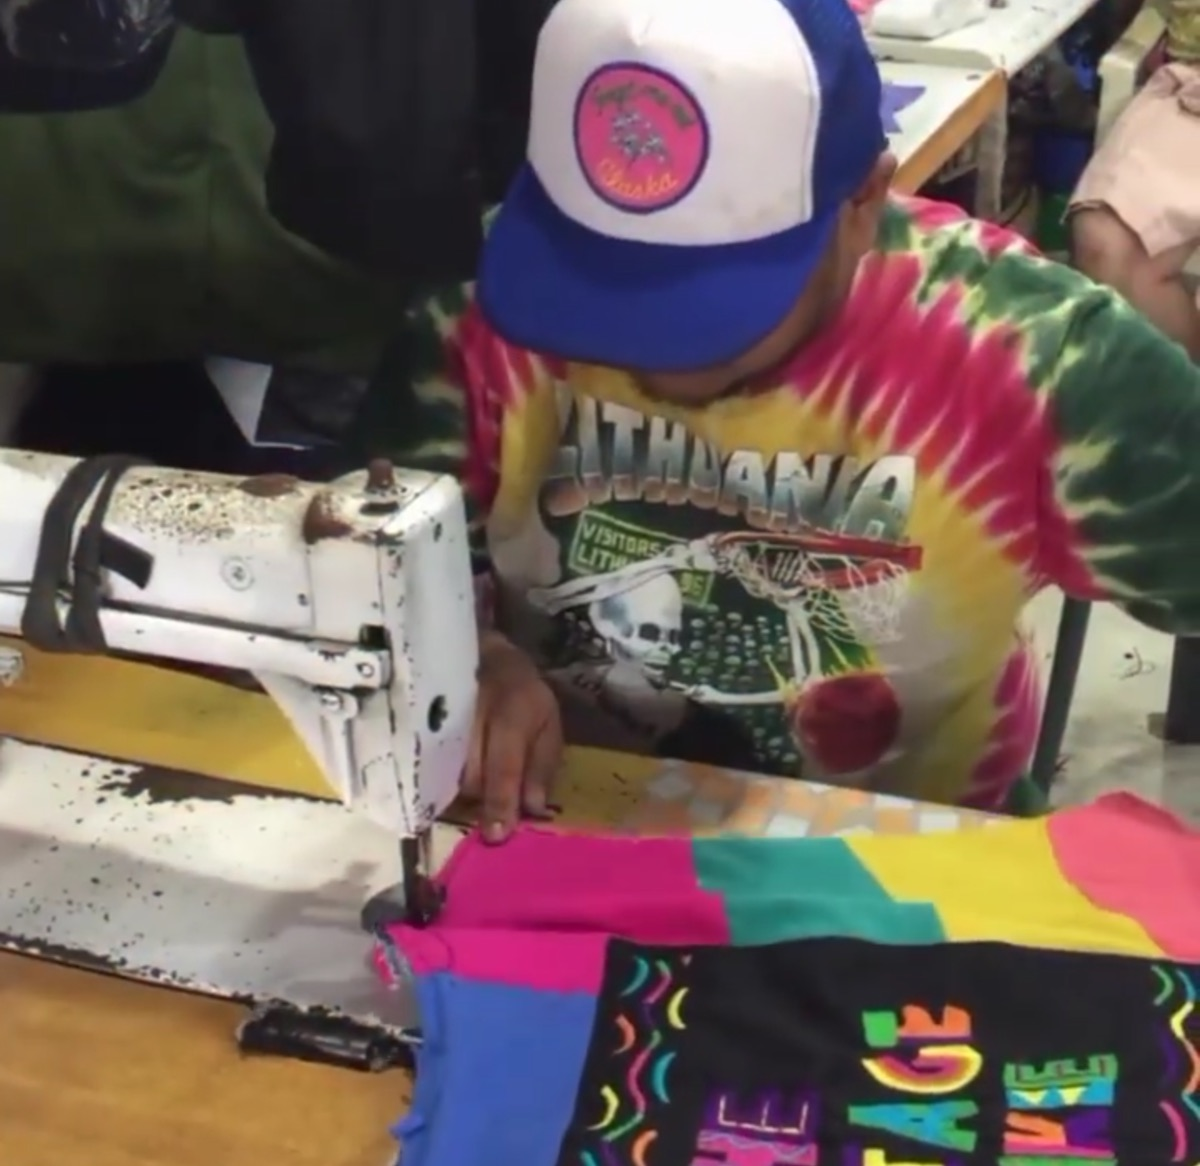 Local project Karma Collective is making art out of thrift shop finds 1